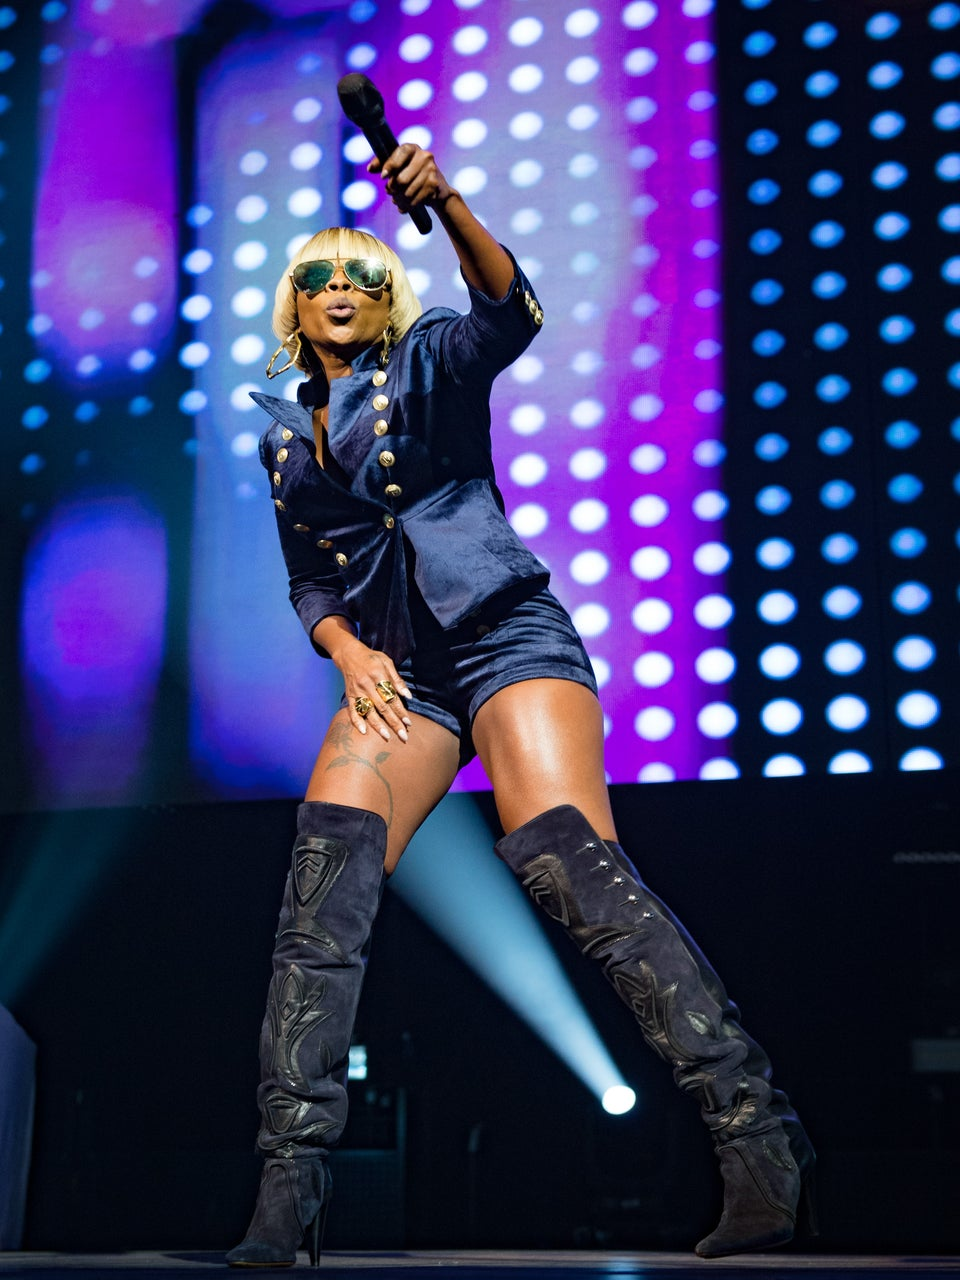 Mary J. Blige's On People Imitating Her Iconic Dance Moves And Her Breakout Role In 'Mudbound'